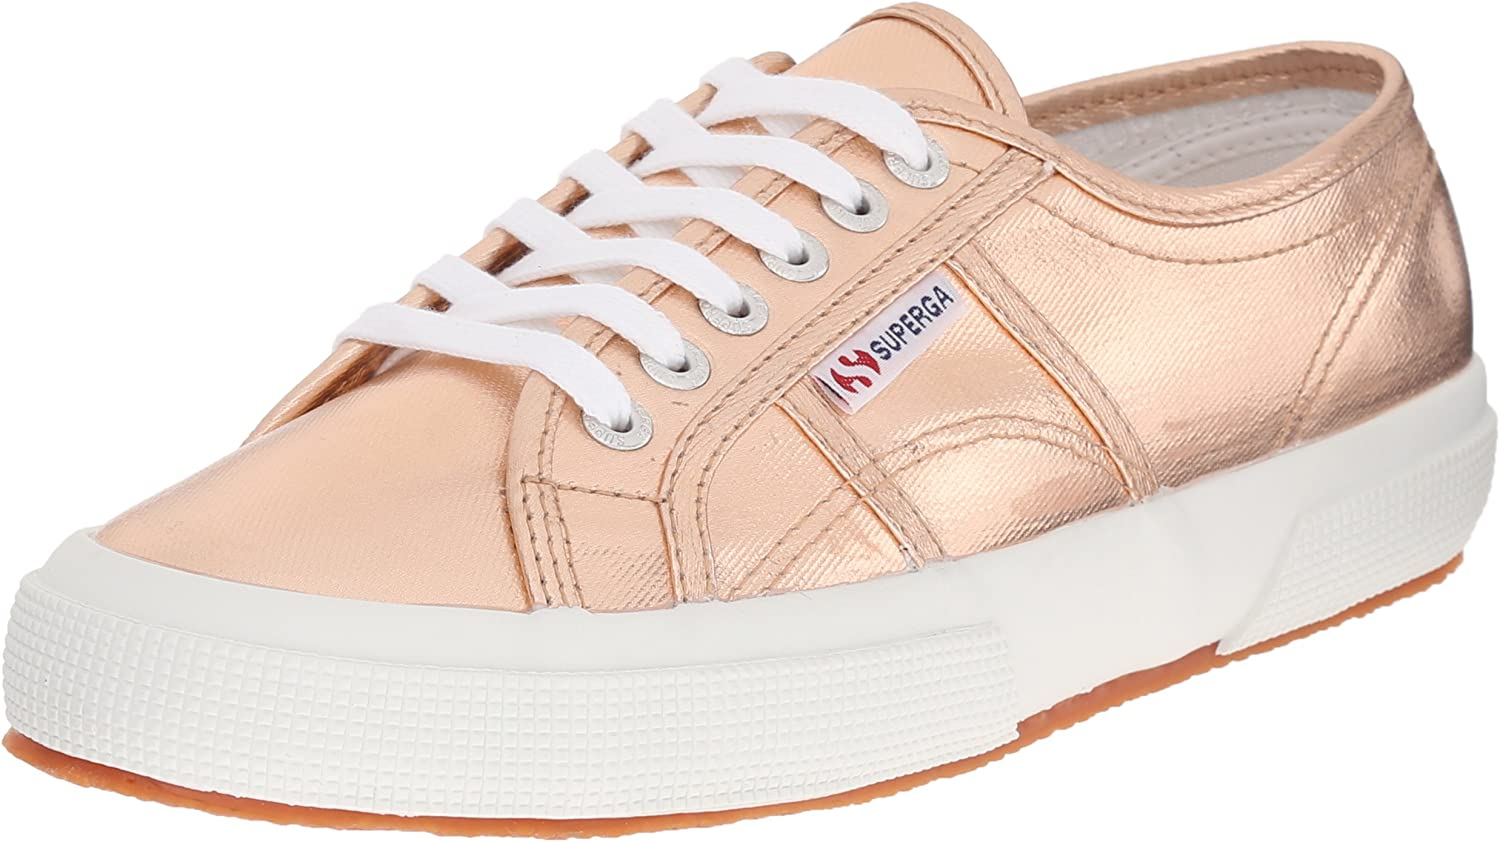 Superga Women's 2750 Cotmetu Fashion Sneaker, pink gold, 39.5 EU 8.5 M US